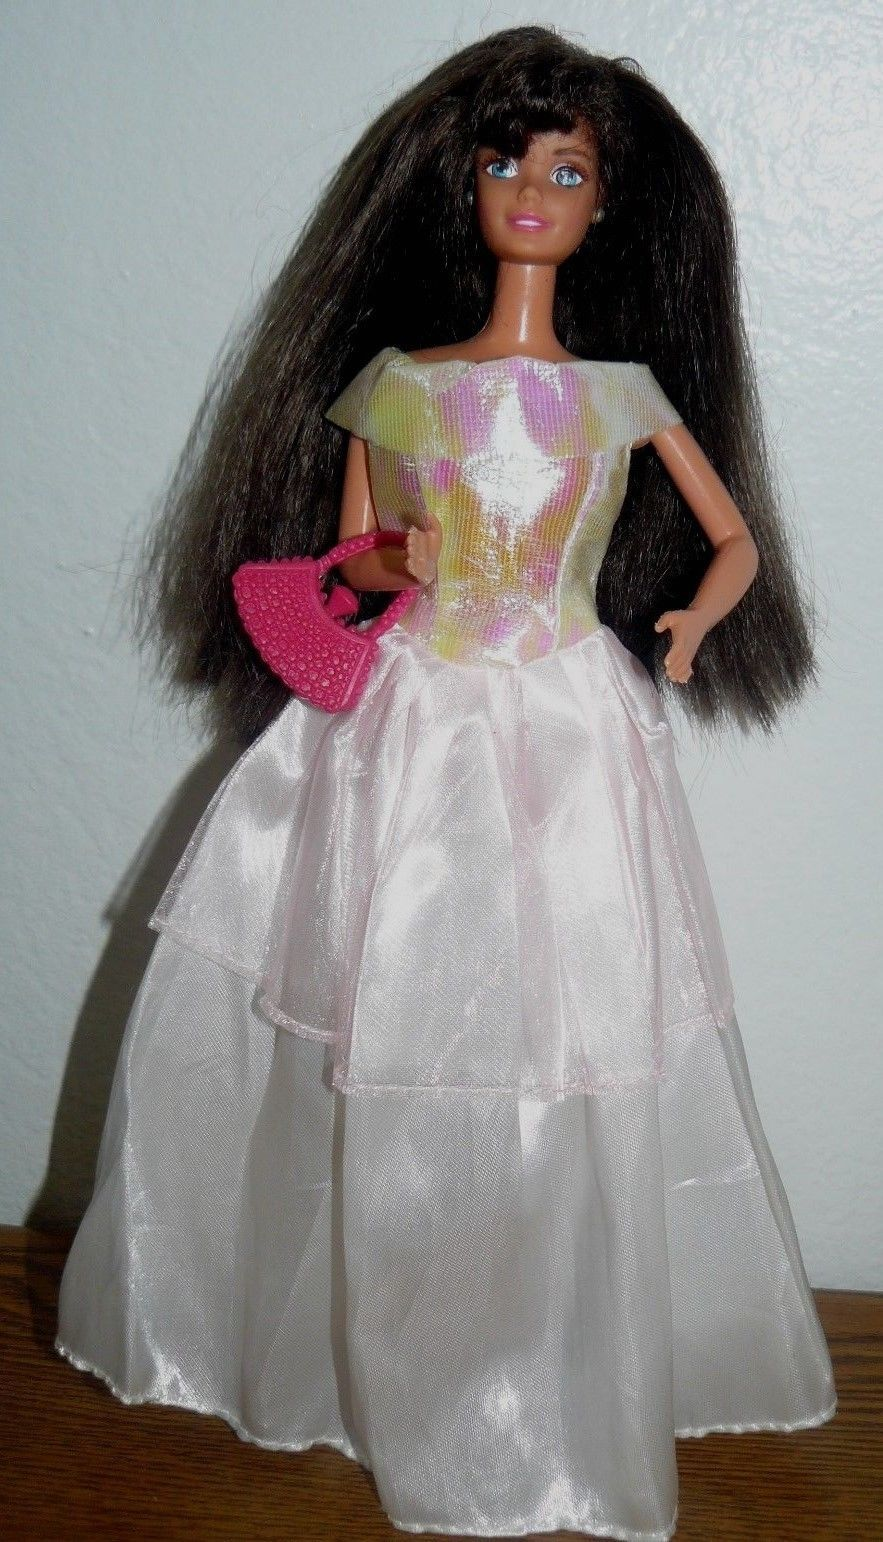 0f6eddd6b991 S l1600. S l1600. Previous. Mattel Barbie Twist N Turn blue eyed doll in white  dress w pink top shoes